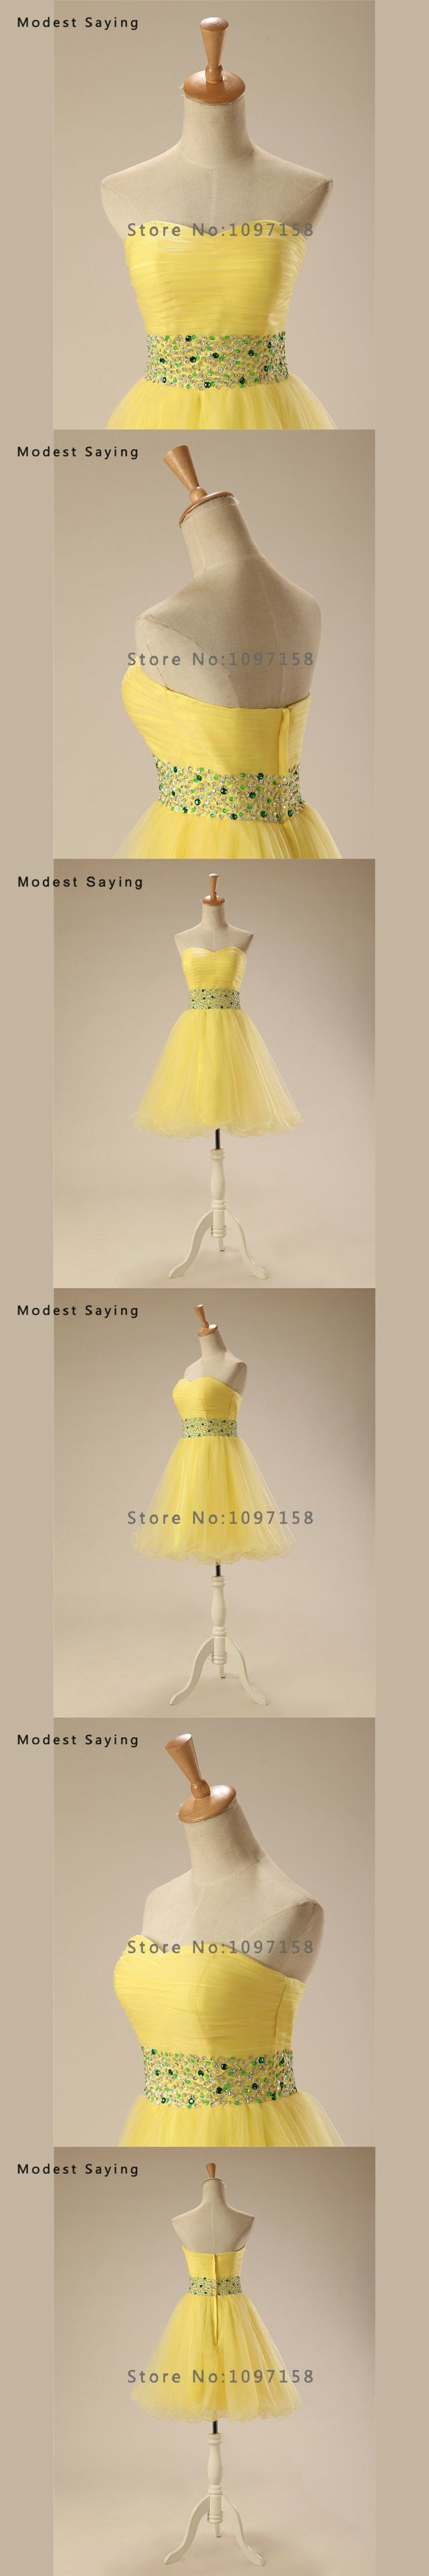 Sexy Yellow A-Line Sweetheart Mini Pleat Beaded Cocktail Dresses 2017 Girls Formal Short Homecoming Prom Gown vestidos de coctel